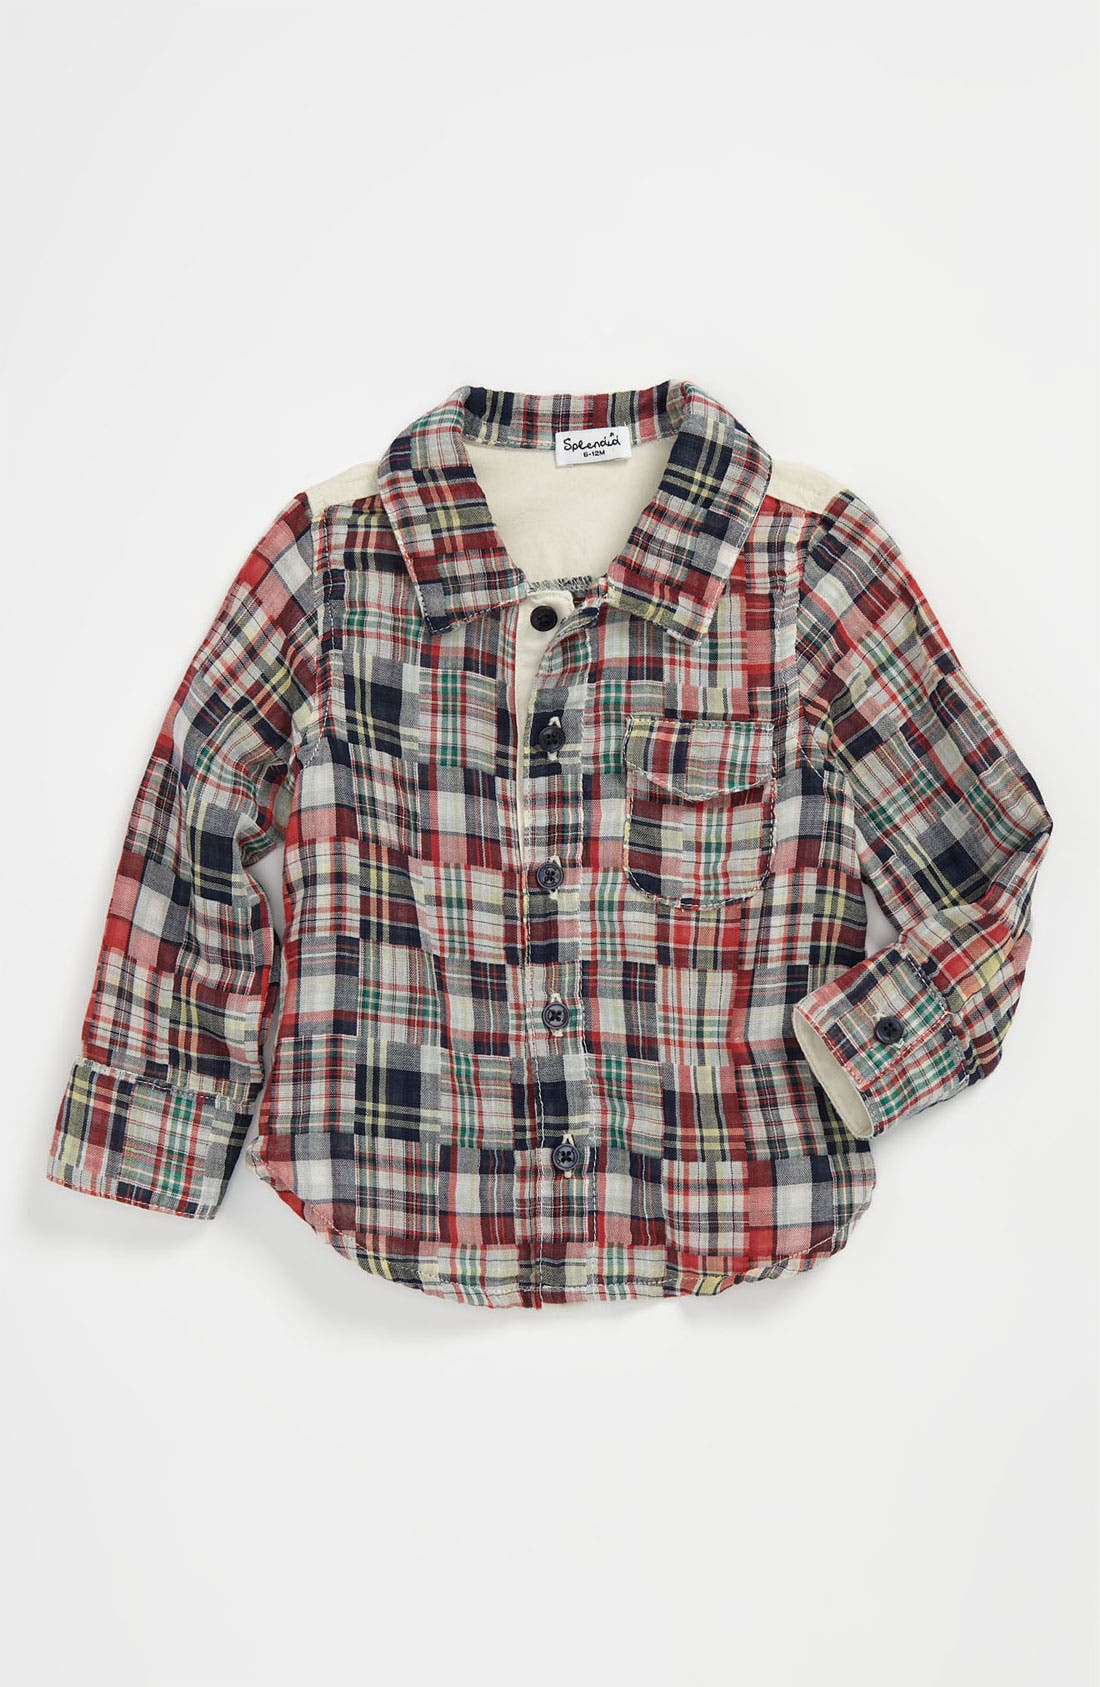 Alternate Image 1 Selected - Splendid Patchwork Button Down Shirt (Baby)